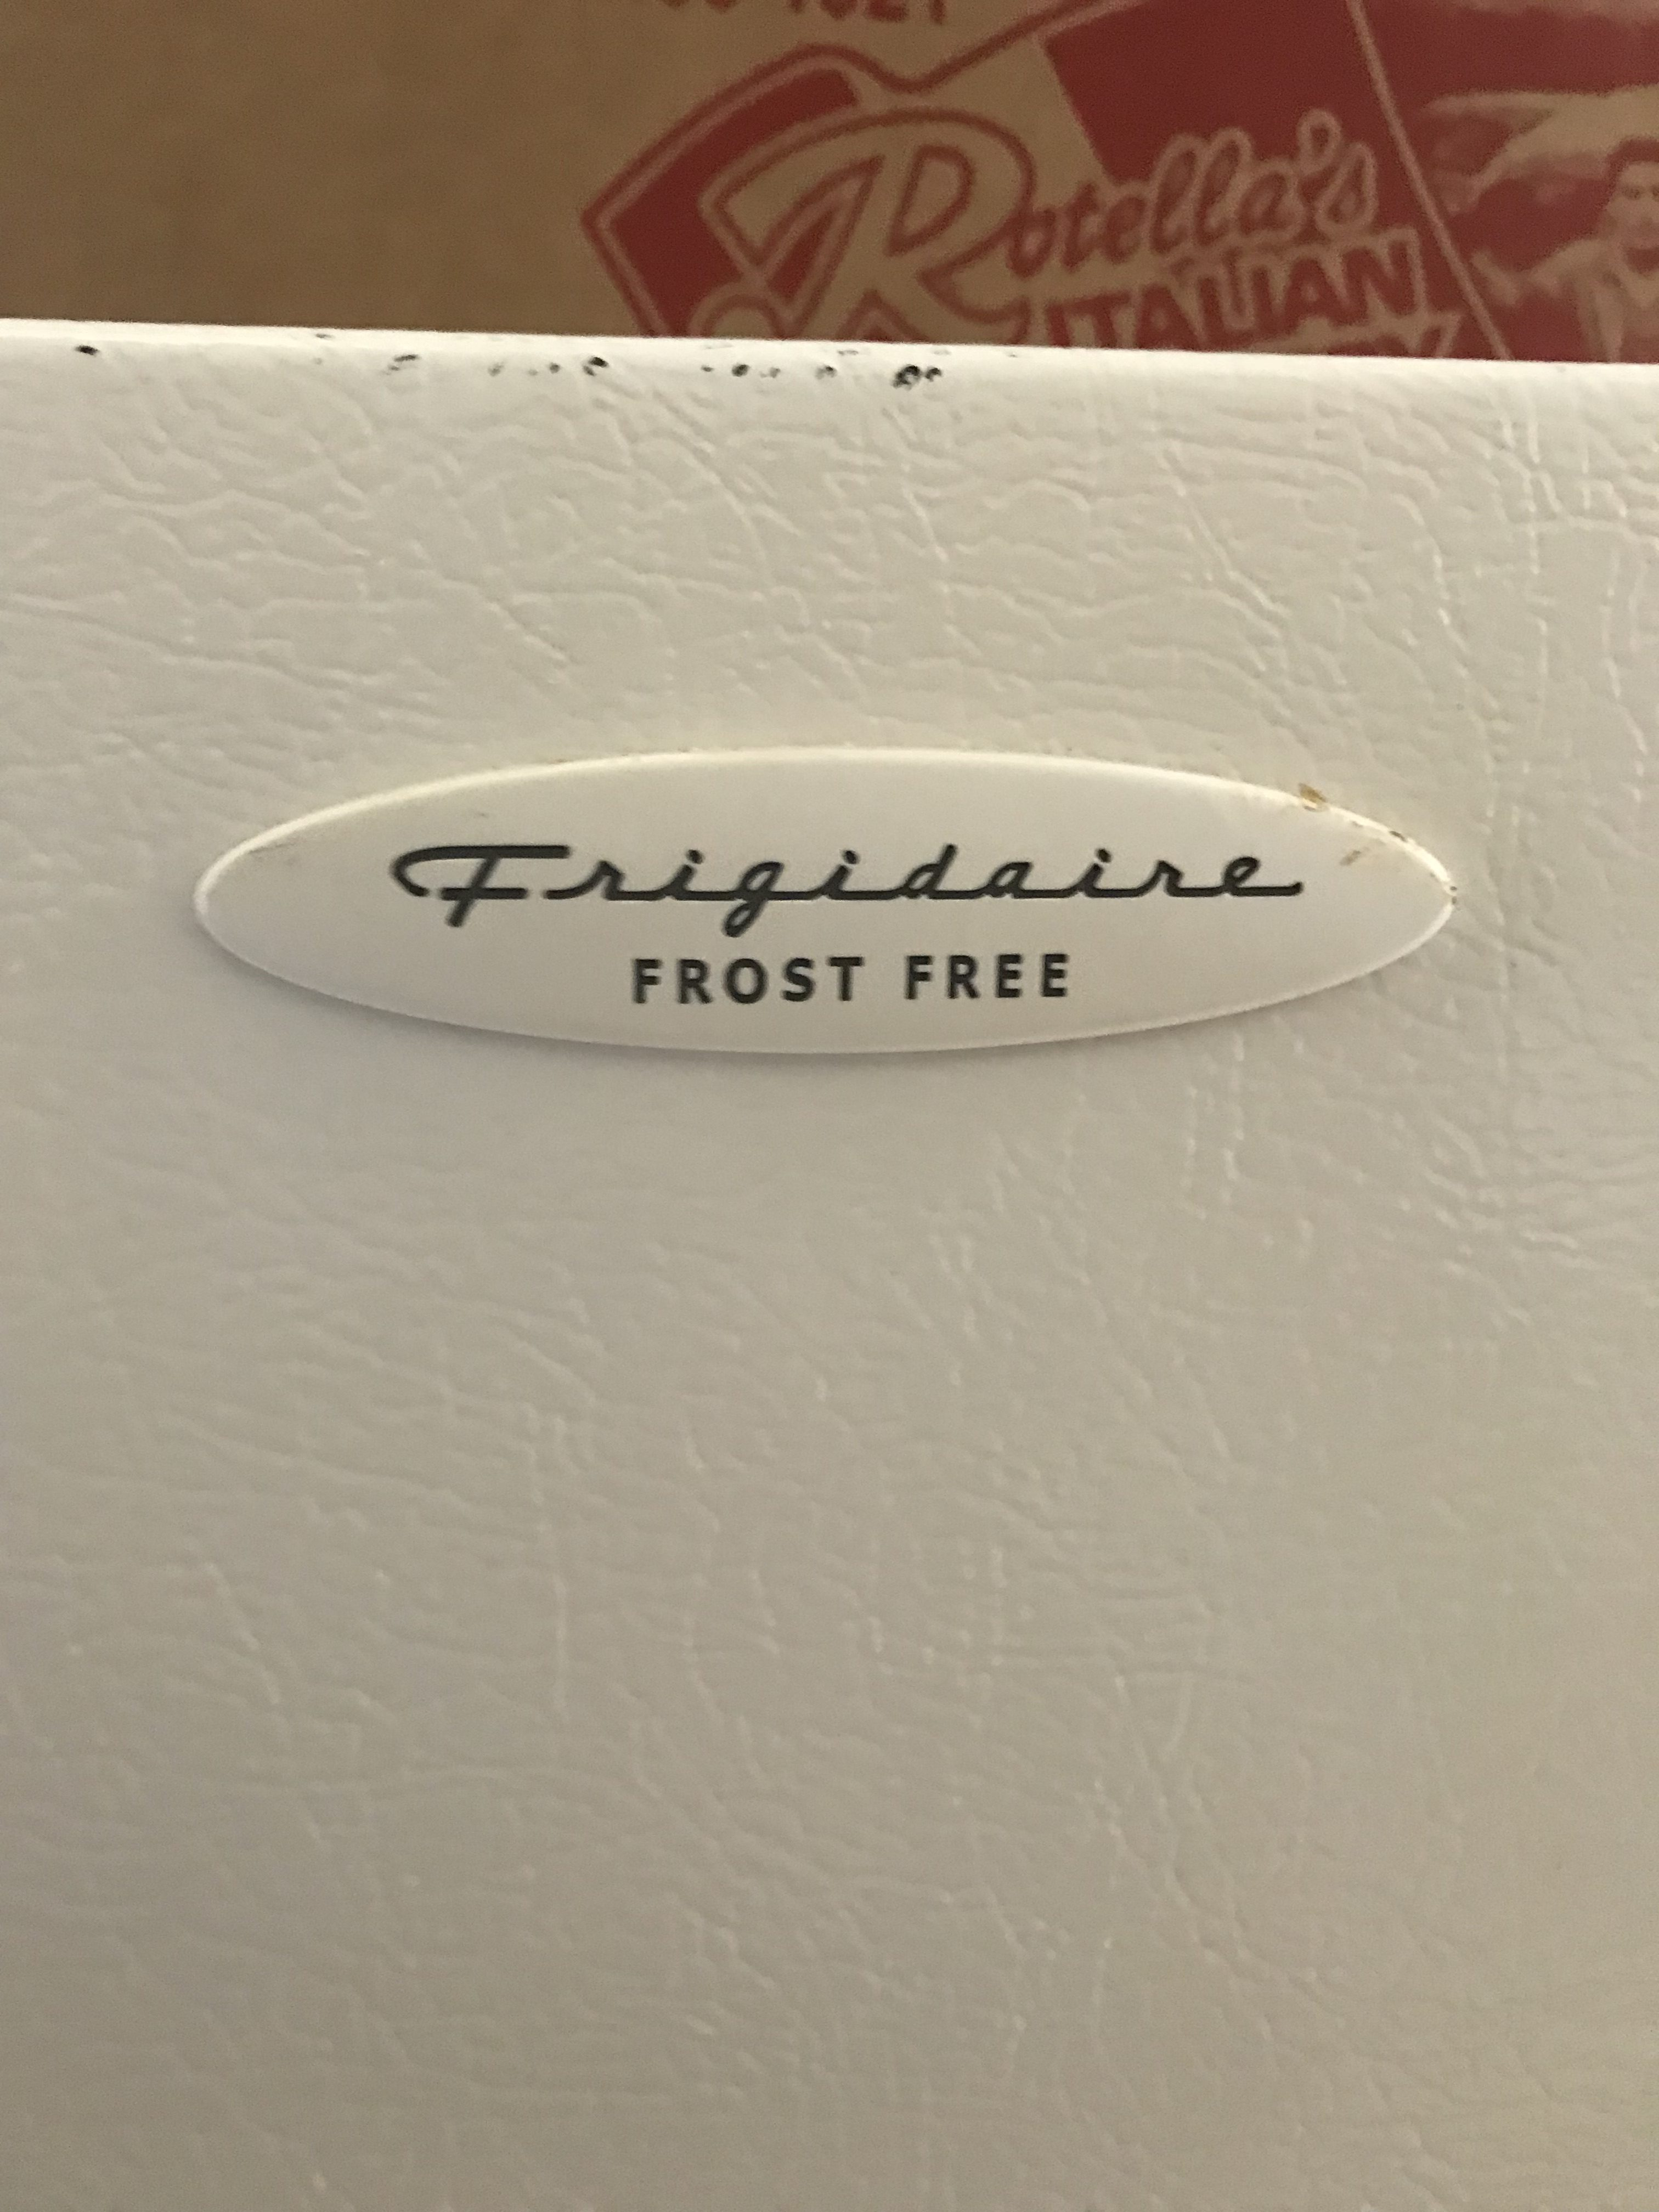 Frigidaire-Frost-Free-Commercial-Upright-Freezer.1-e1519071728248.jpg